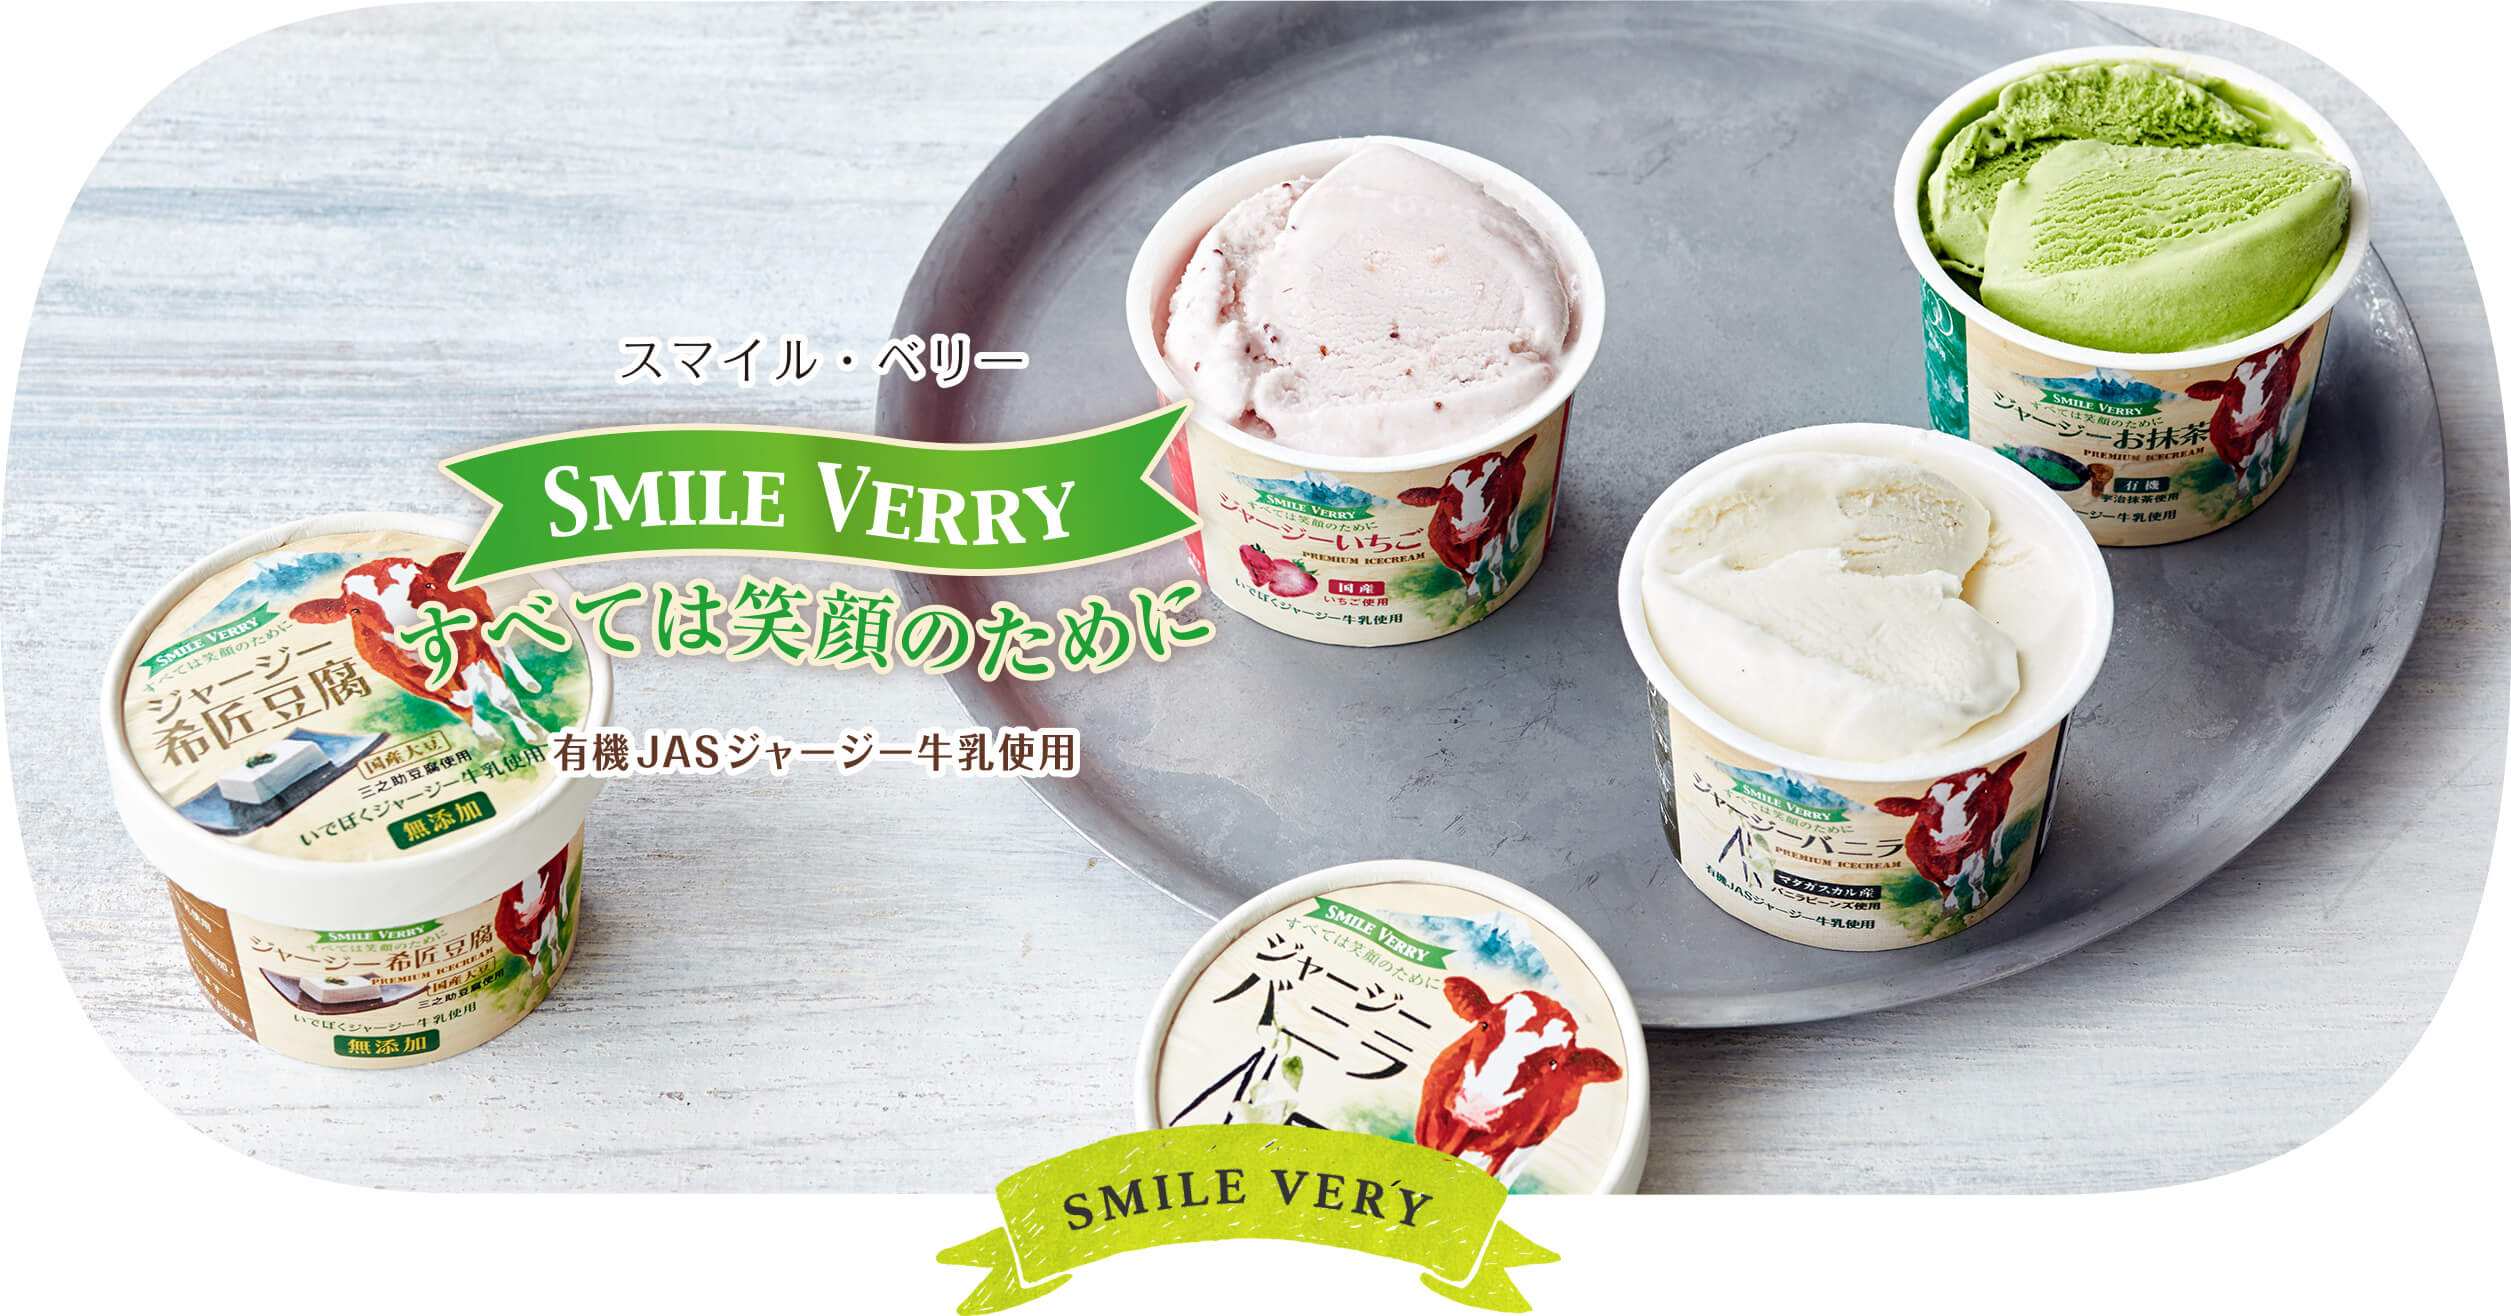 SMILE VERY